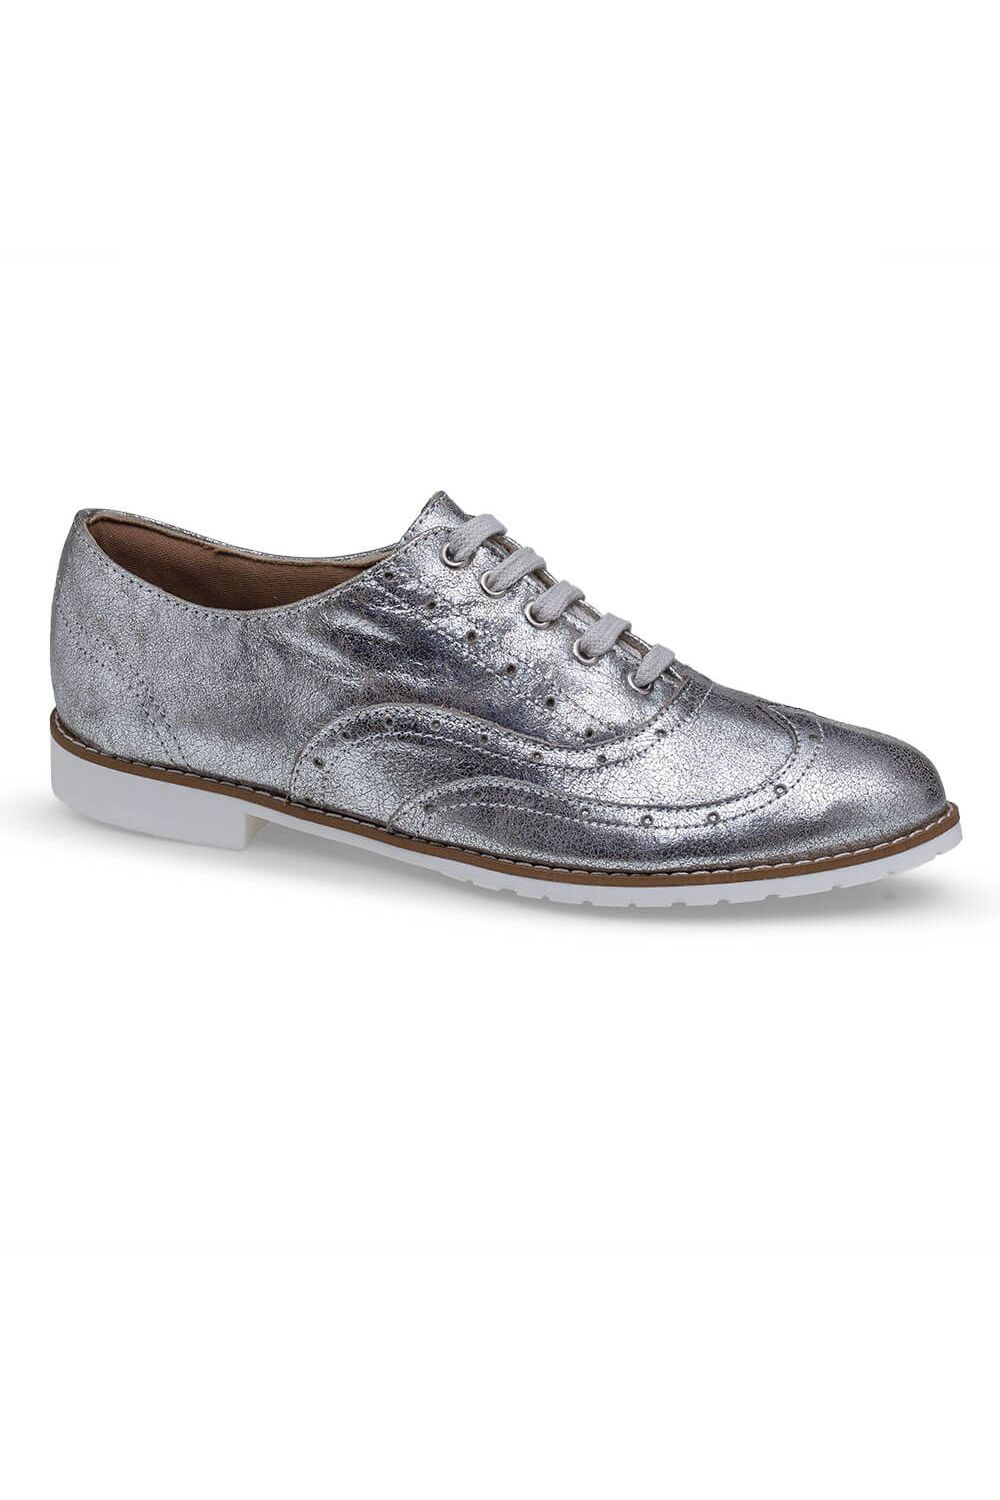 bcdec4a747 Sapato Oxford Prata Flamarian - 201282-6PR - Moda it